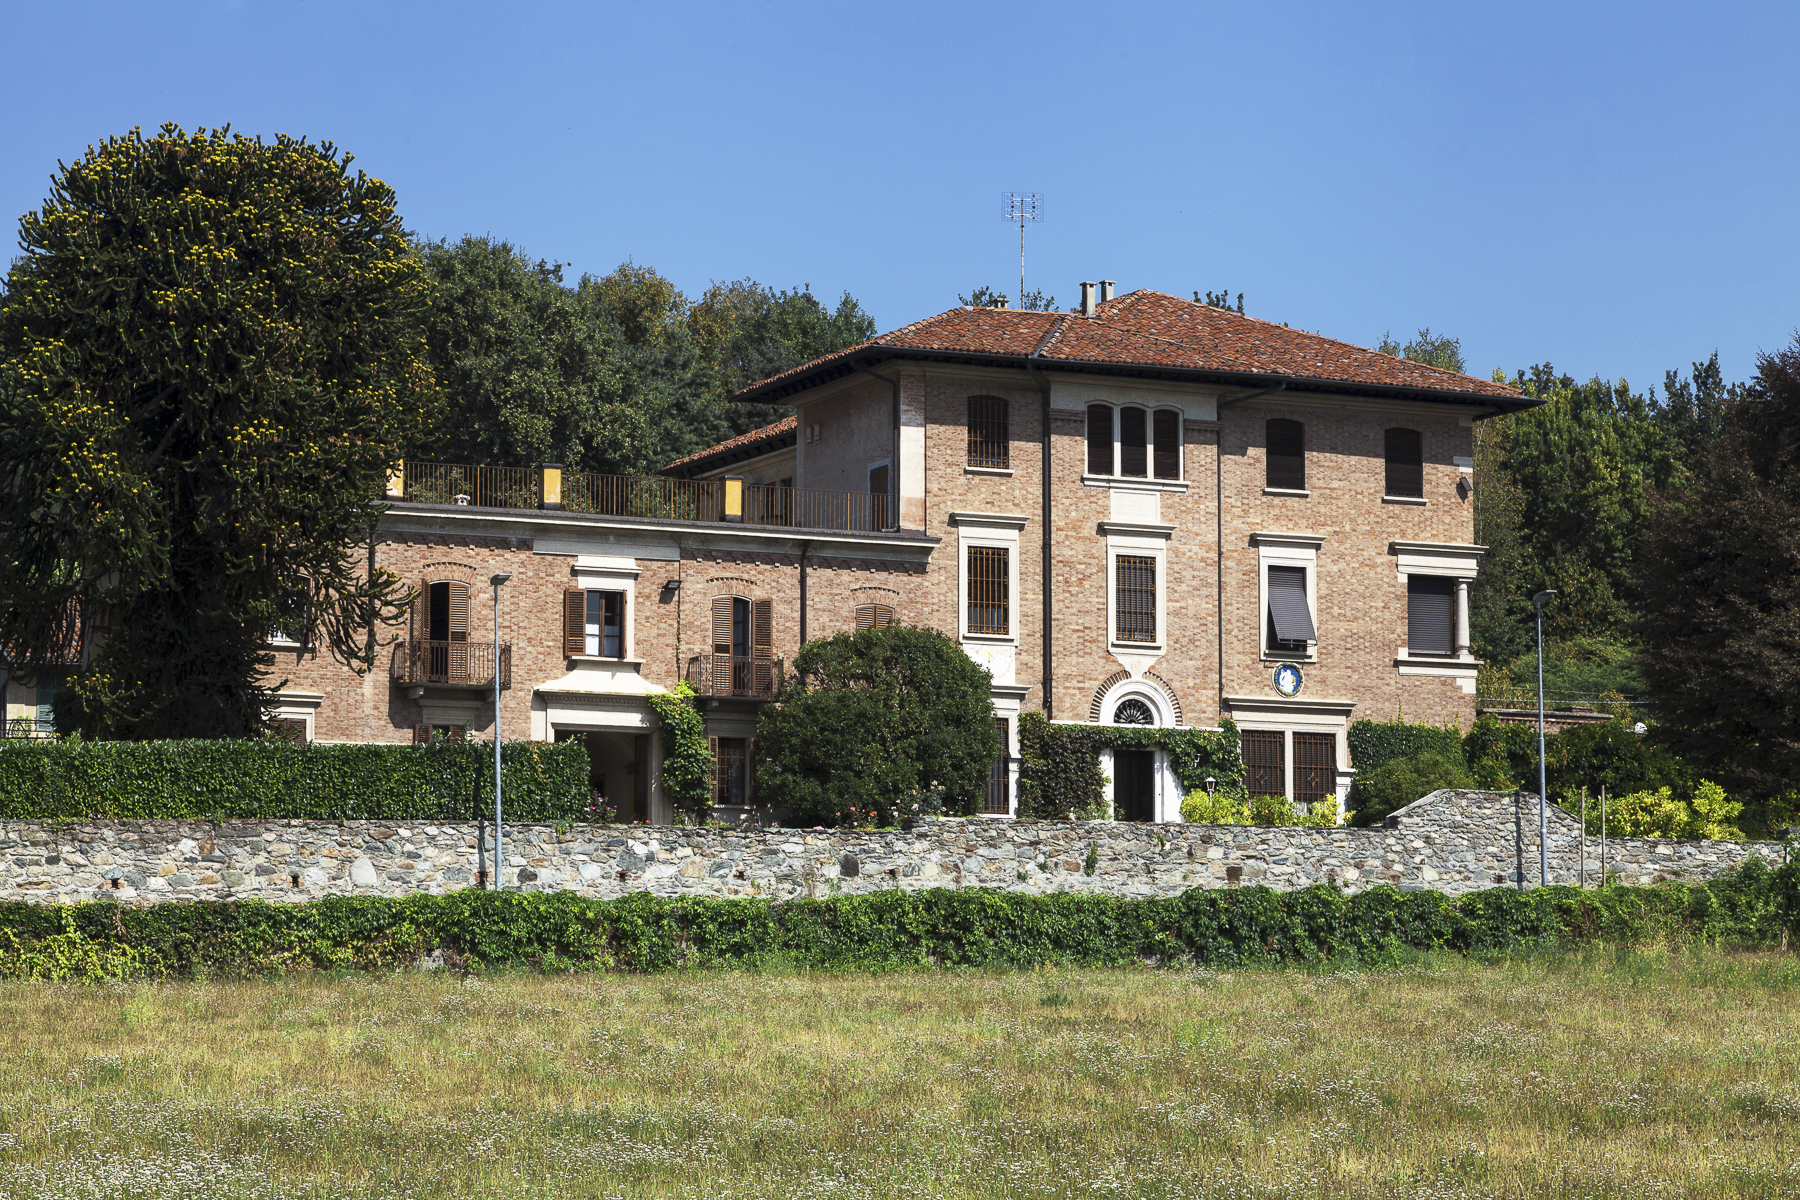 Additional photo for property listing at Unique Villa with swimming pool Piazza Rampone Biella, Biella 13883 Italien